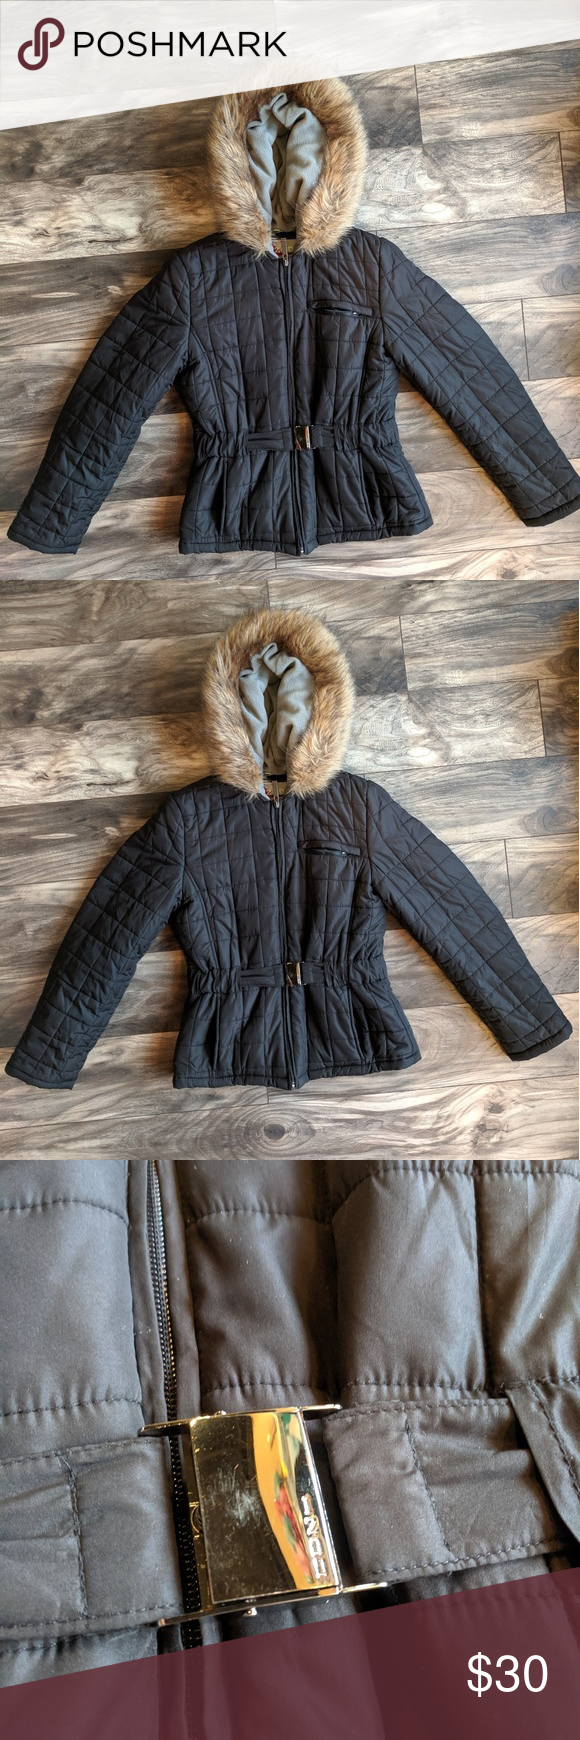 Izod Jacket Izod Performancex Jacket Black With Fur Hoodie Attached Belt Hardware Has Some Scratches Shown In Picture Coz Fur Hoodie Clothes Design Fashion [ 1740 x 580 Pixel ]